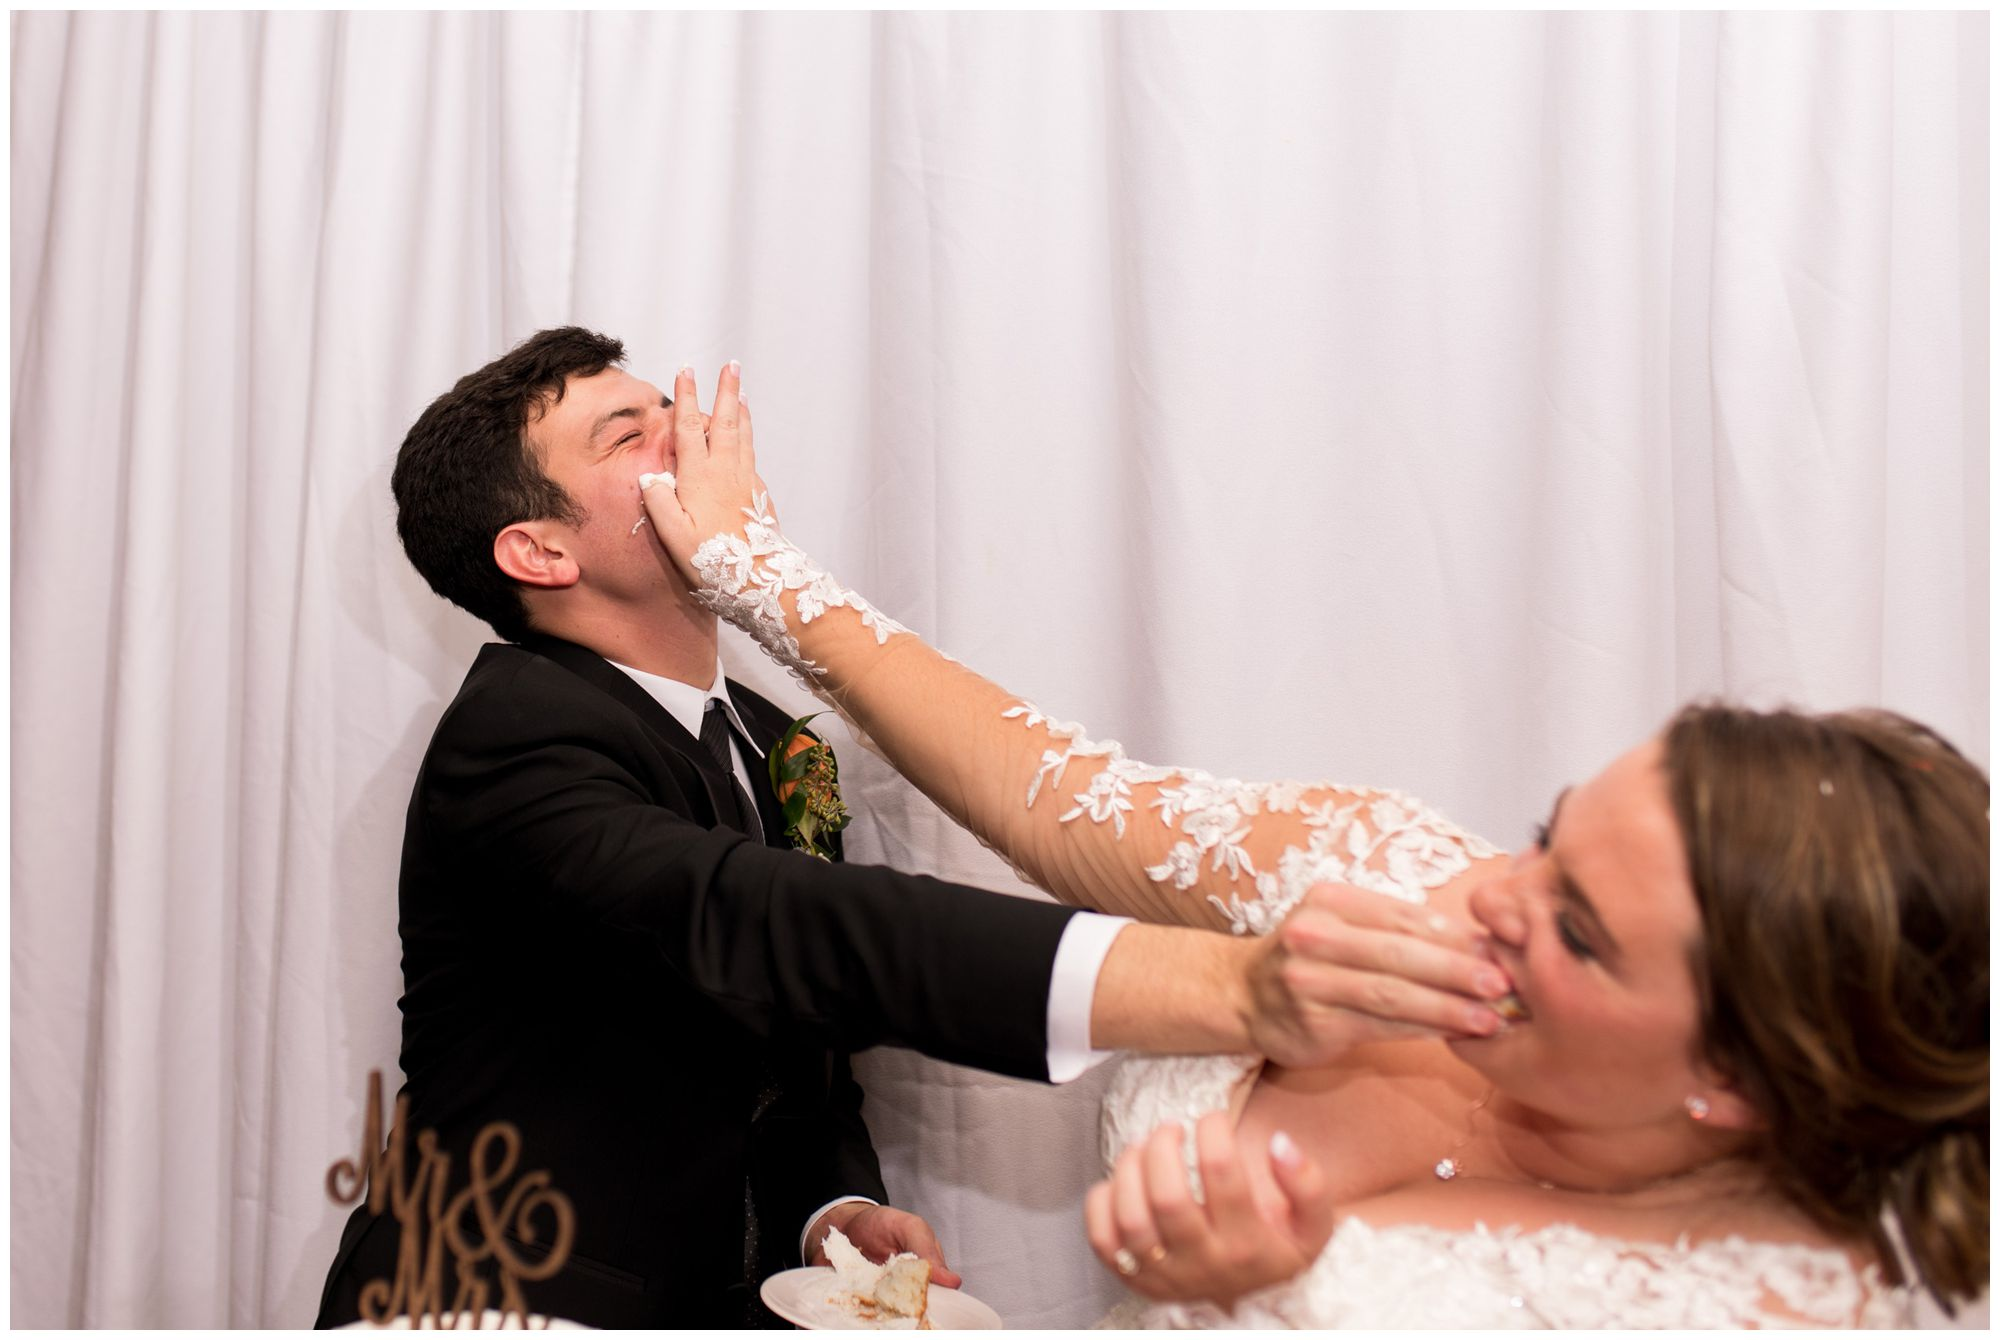 bride and groom cut cake and smash into each other's faces during Fort Wayne wedding reception